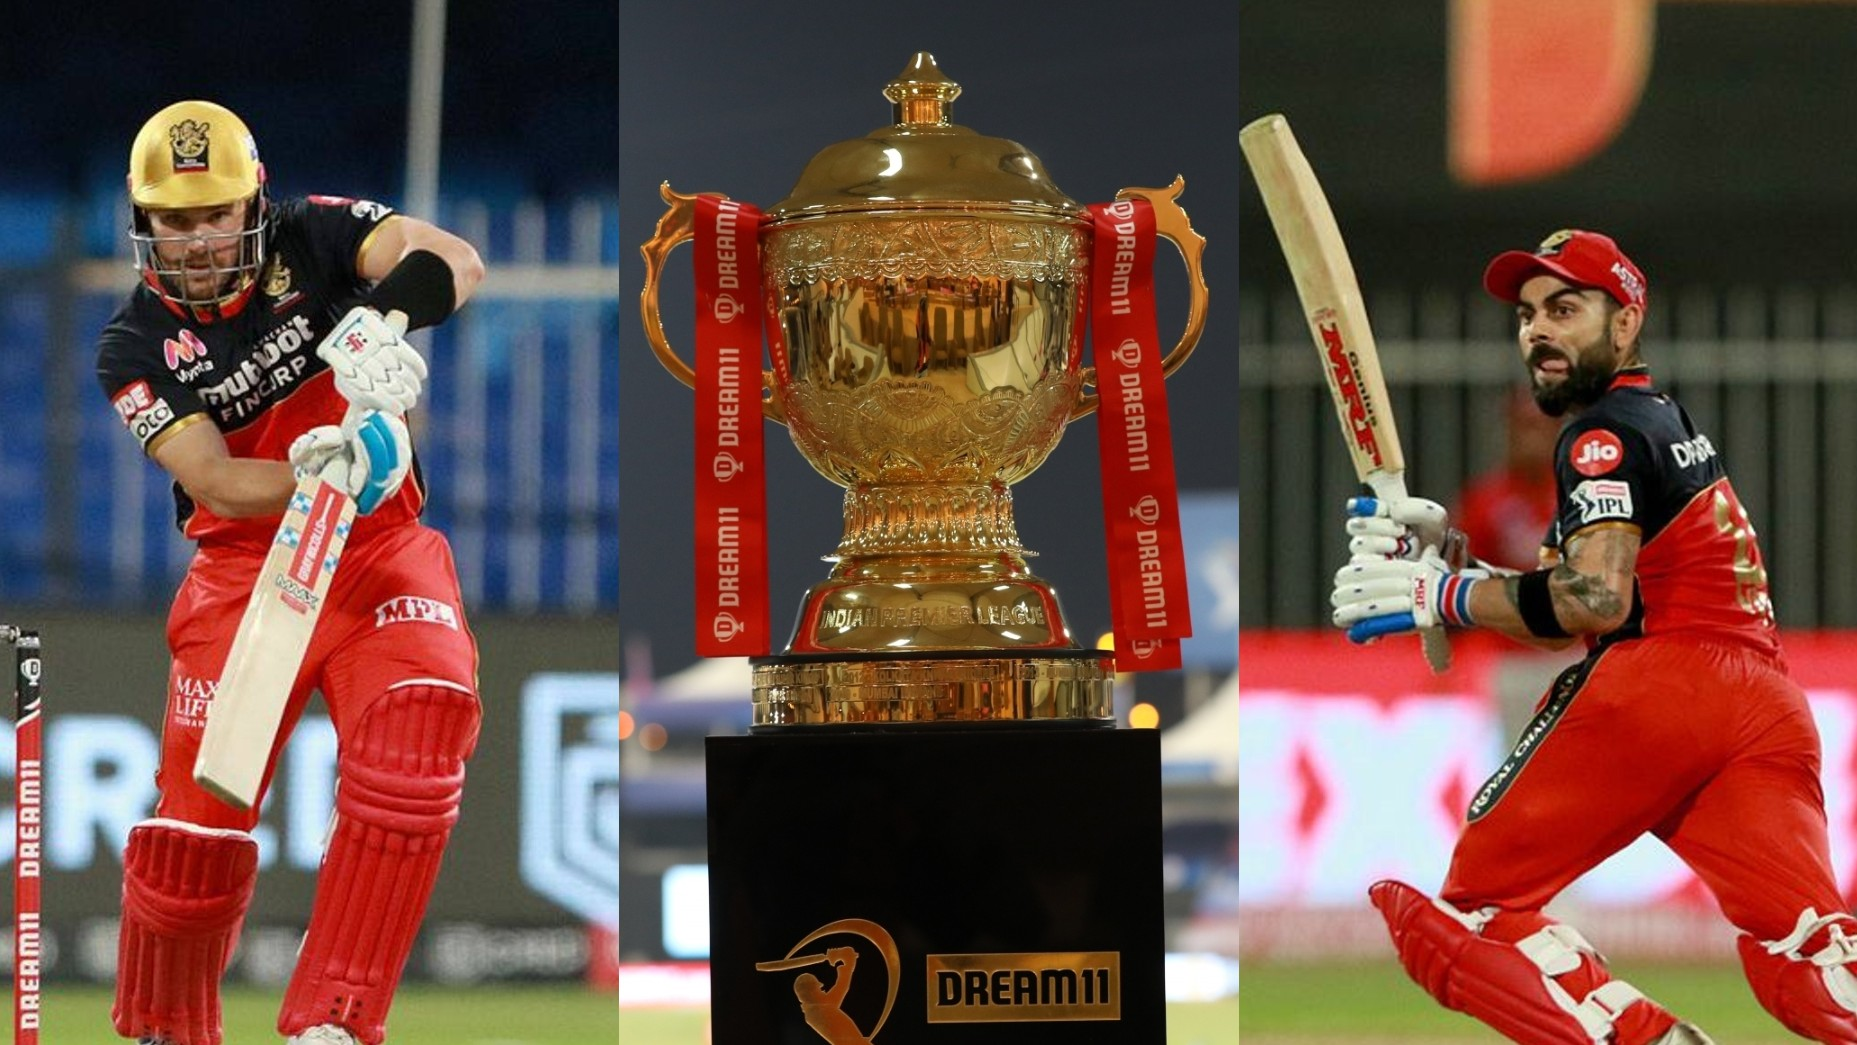 IPL 2020: 5 big disappointments for Royal Challengers Bangalore in IPL 13